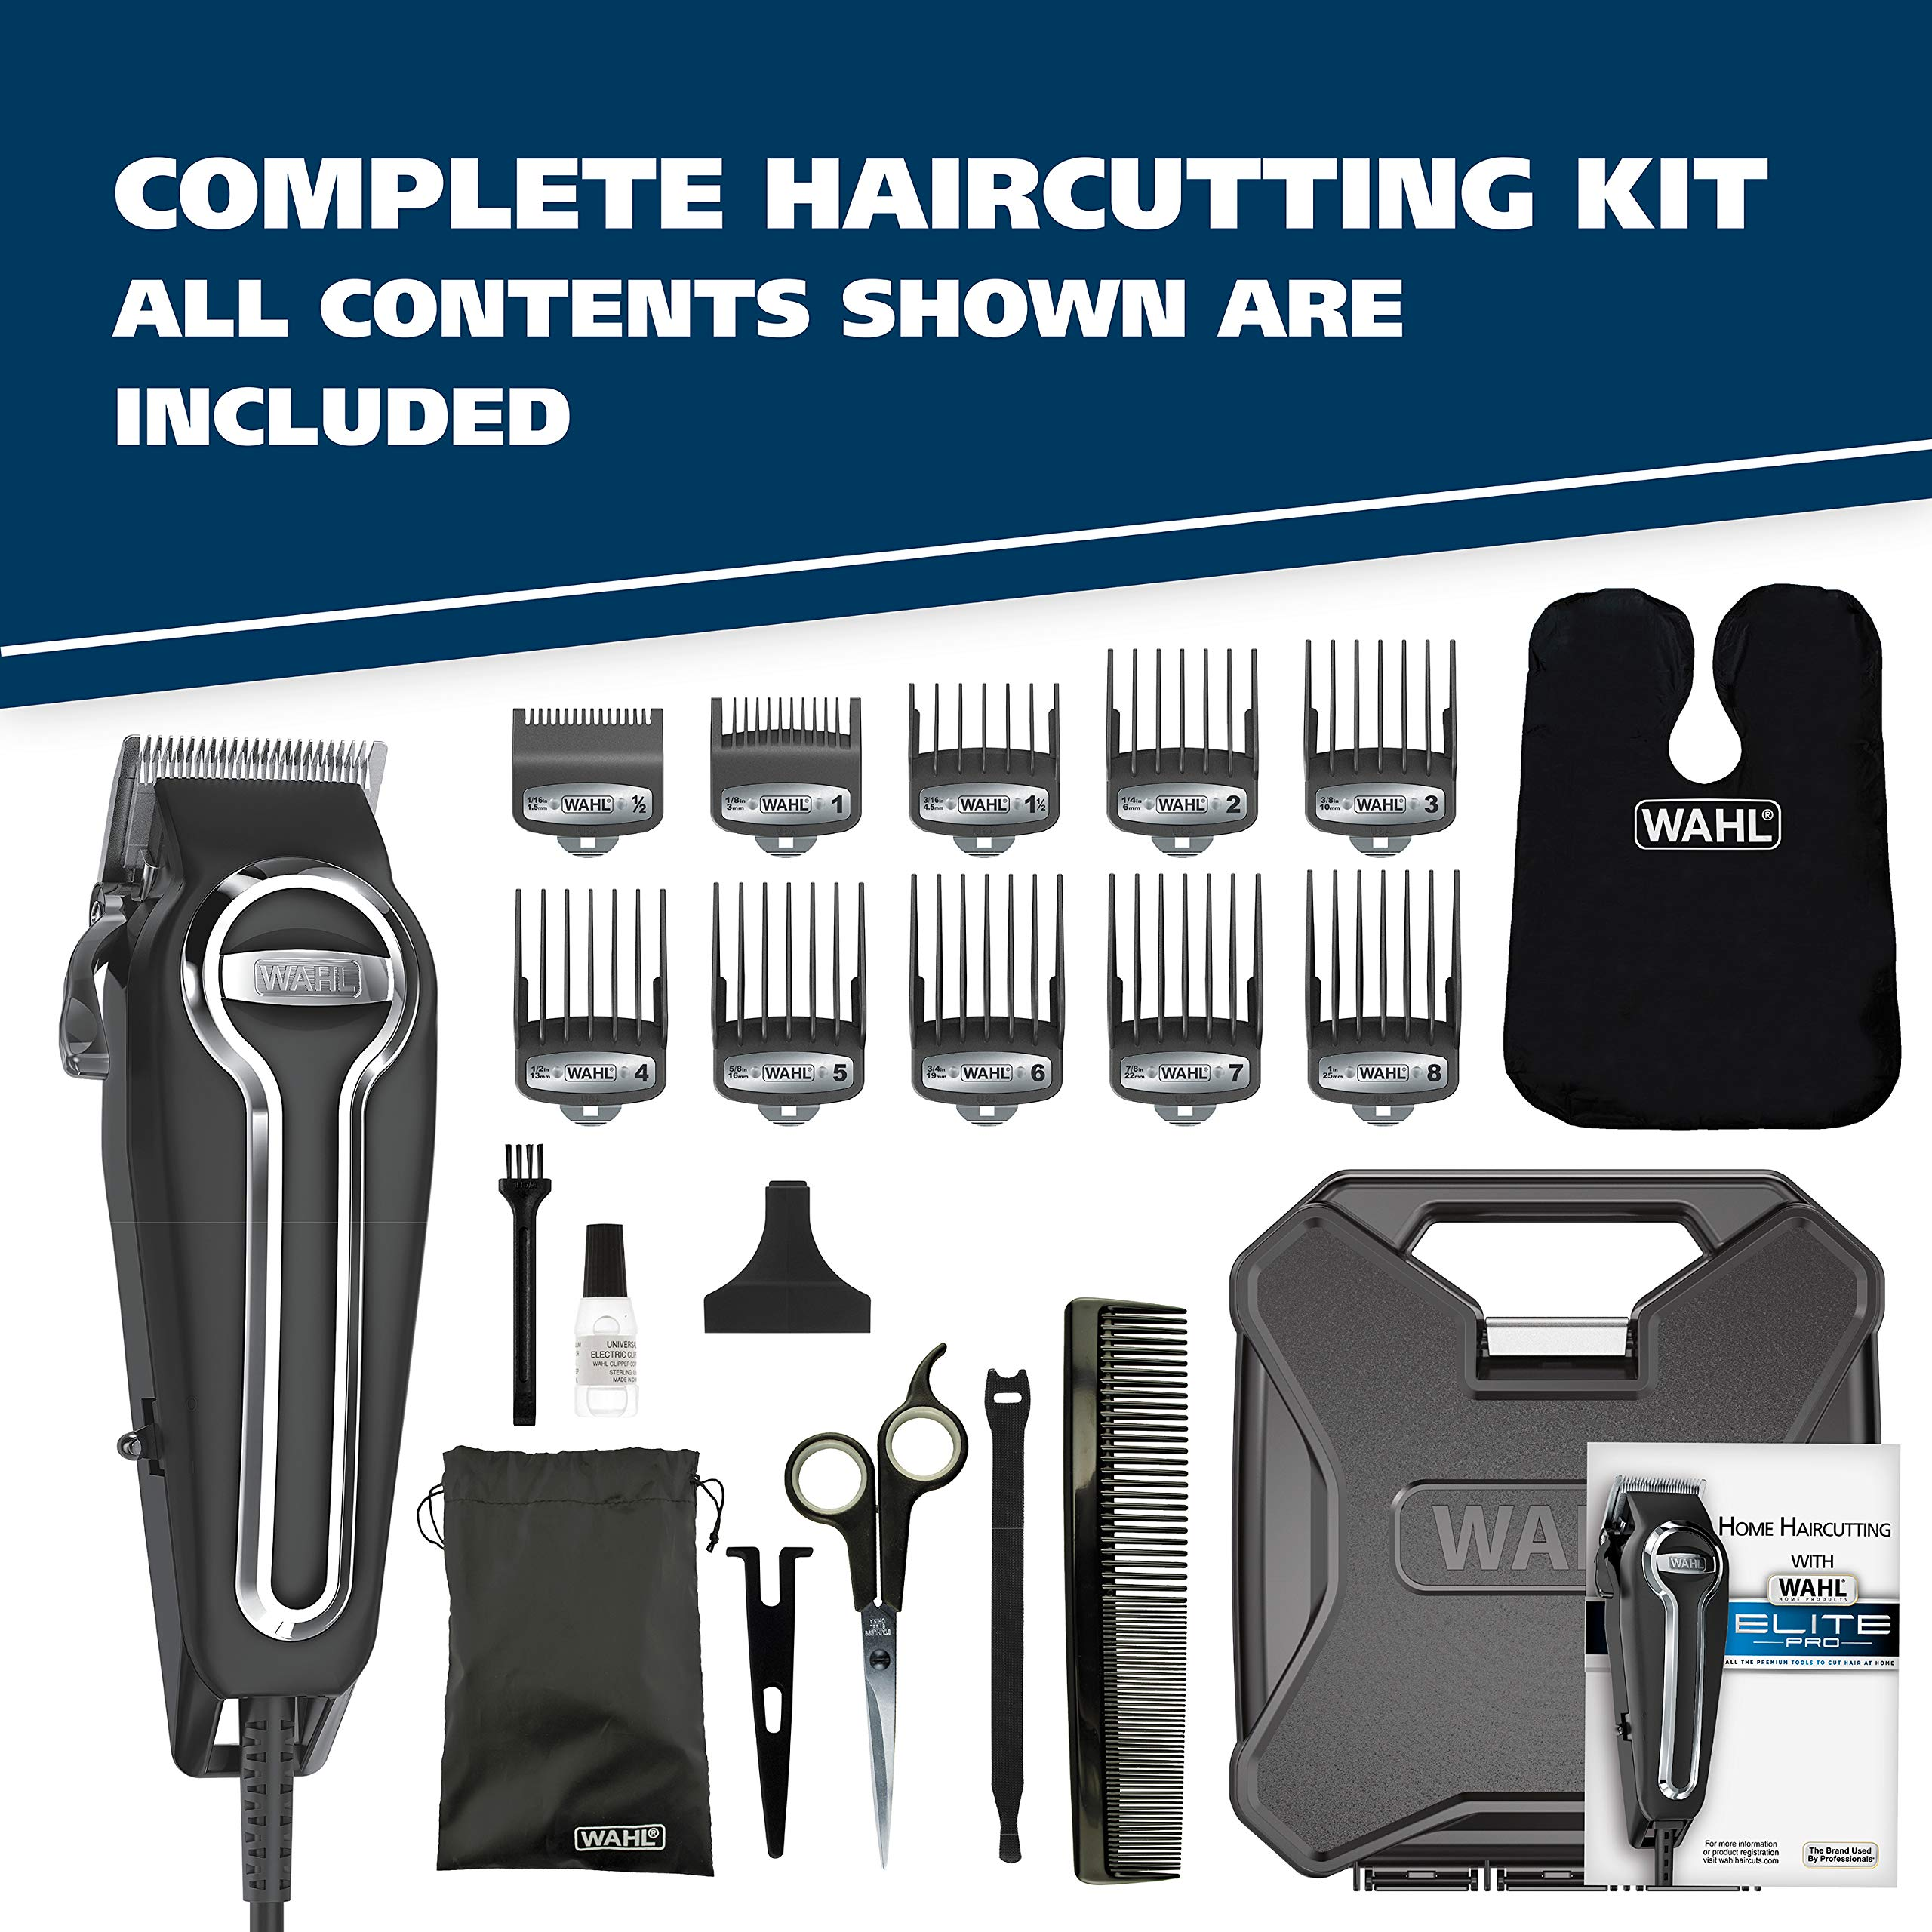 Wahl Clipper Elite Pro High Performance Haircut Kit for men, includes Electric Hair Clippers, secure fit guide combs with stainless steel clips - By The Brand used by Professionals #79602 by WAHL (Image #8)